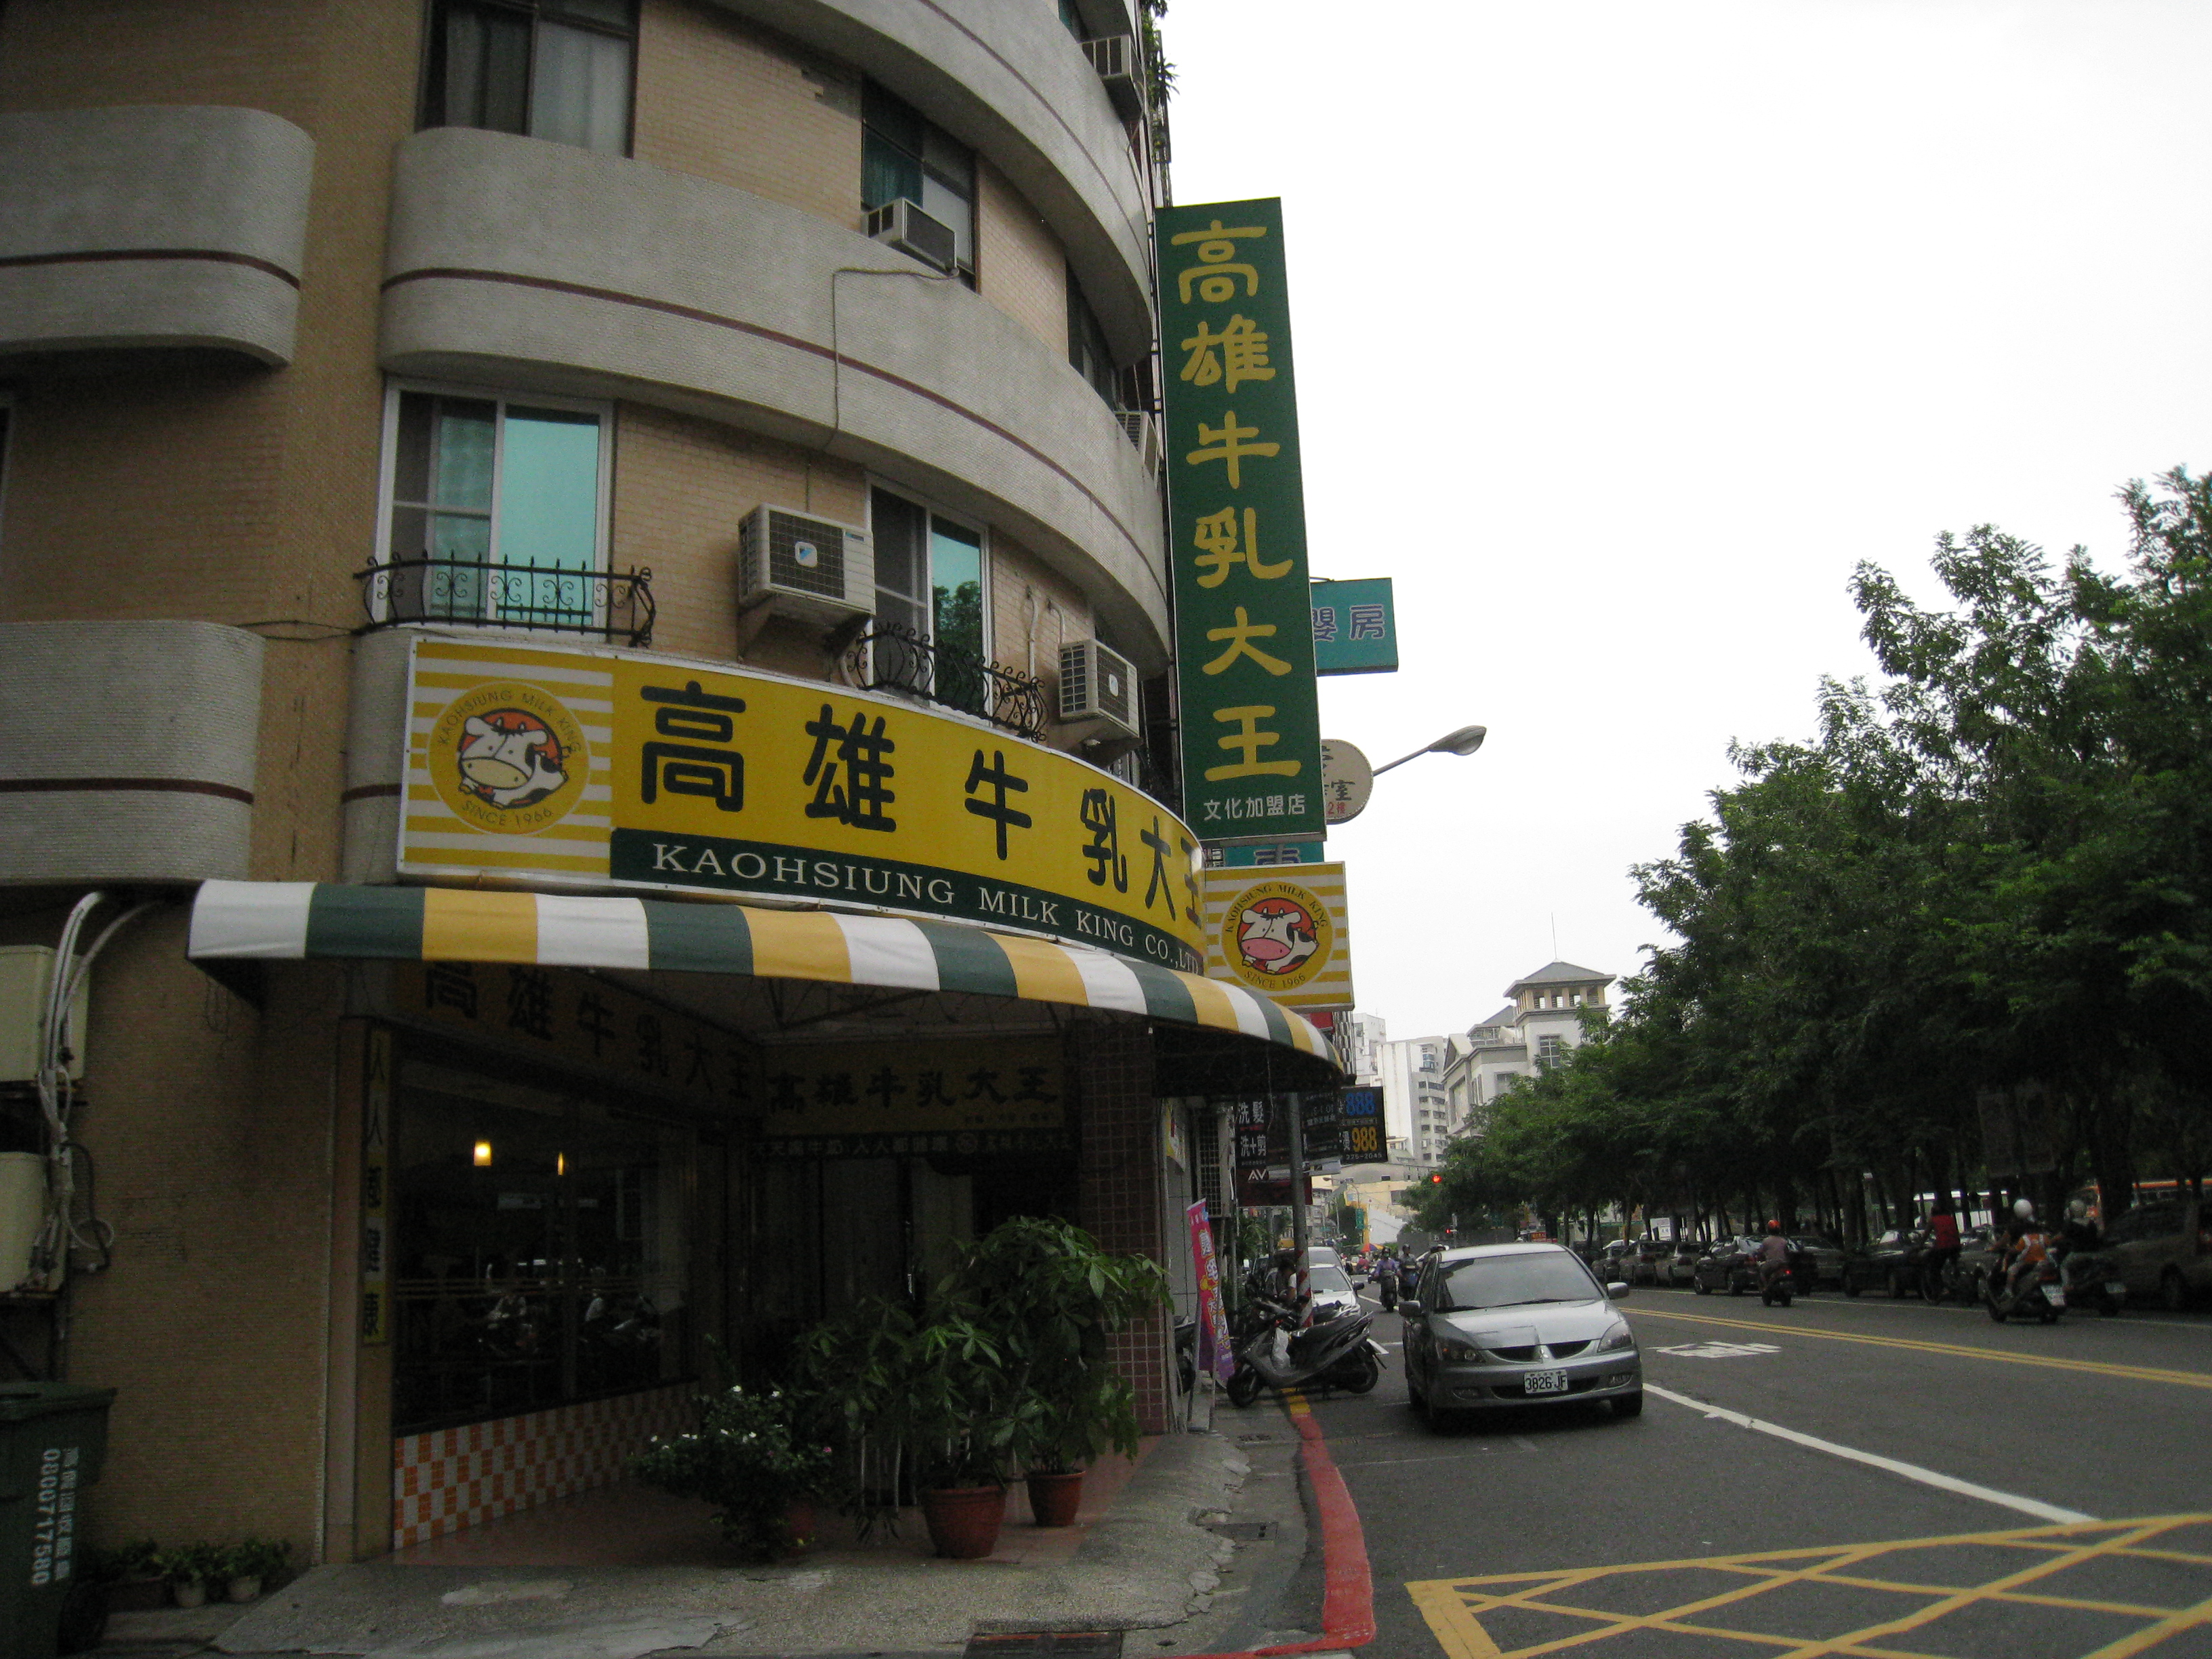 kaohsiung milk king